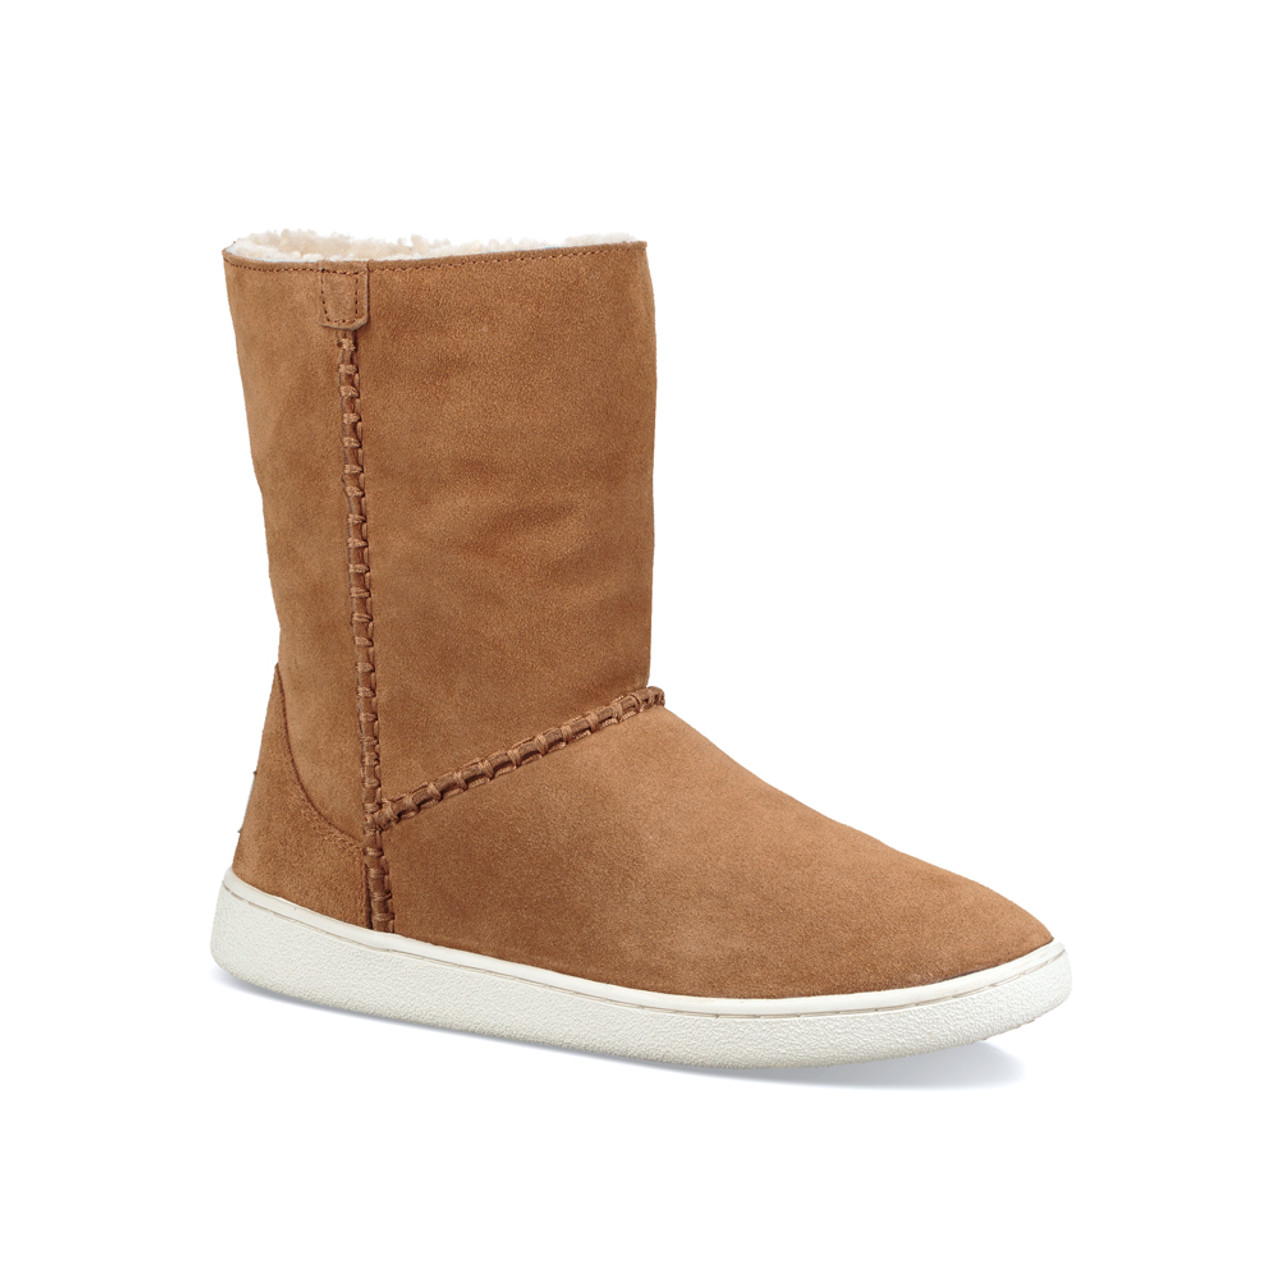 b0934eb8286 UGG Women's Mika Classic Sneaker Boot Chestnut